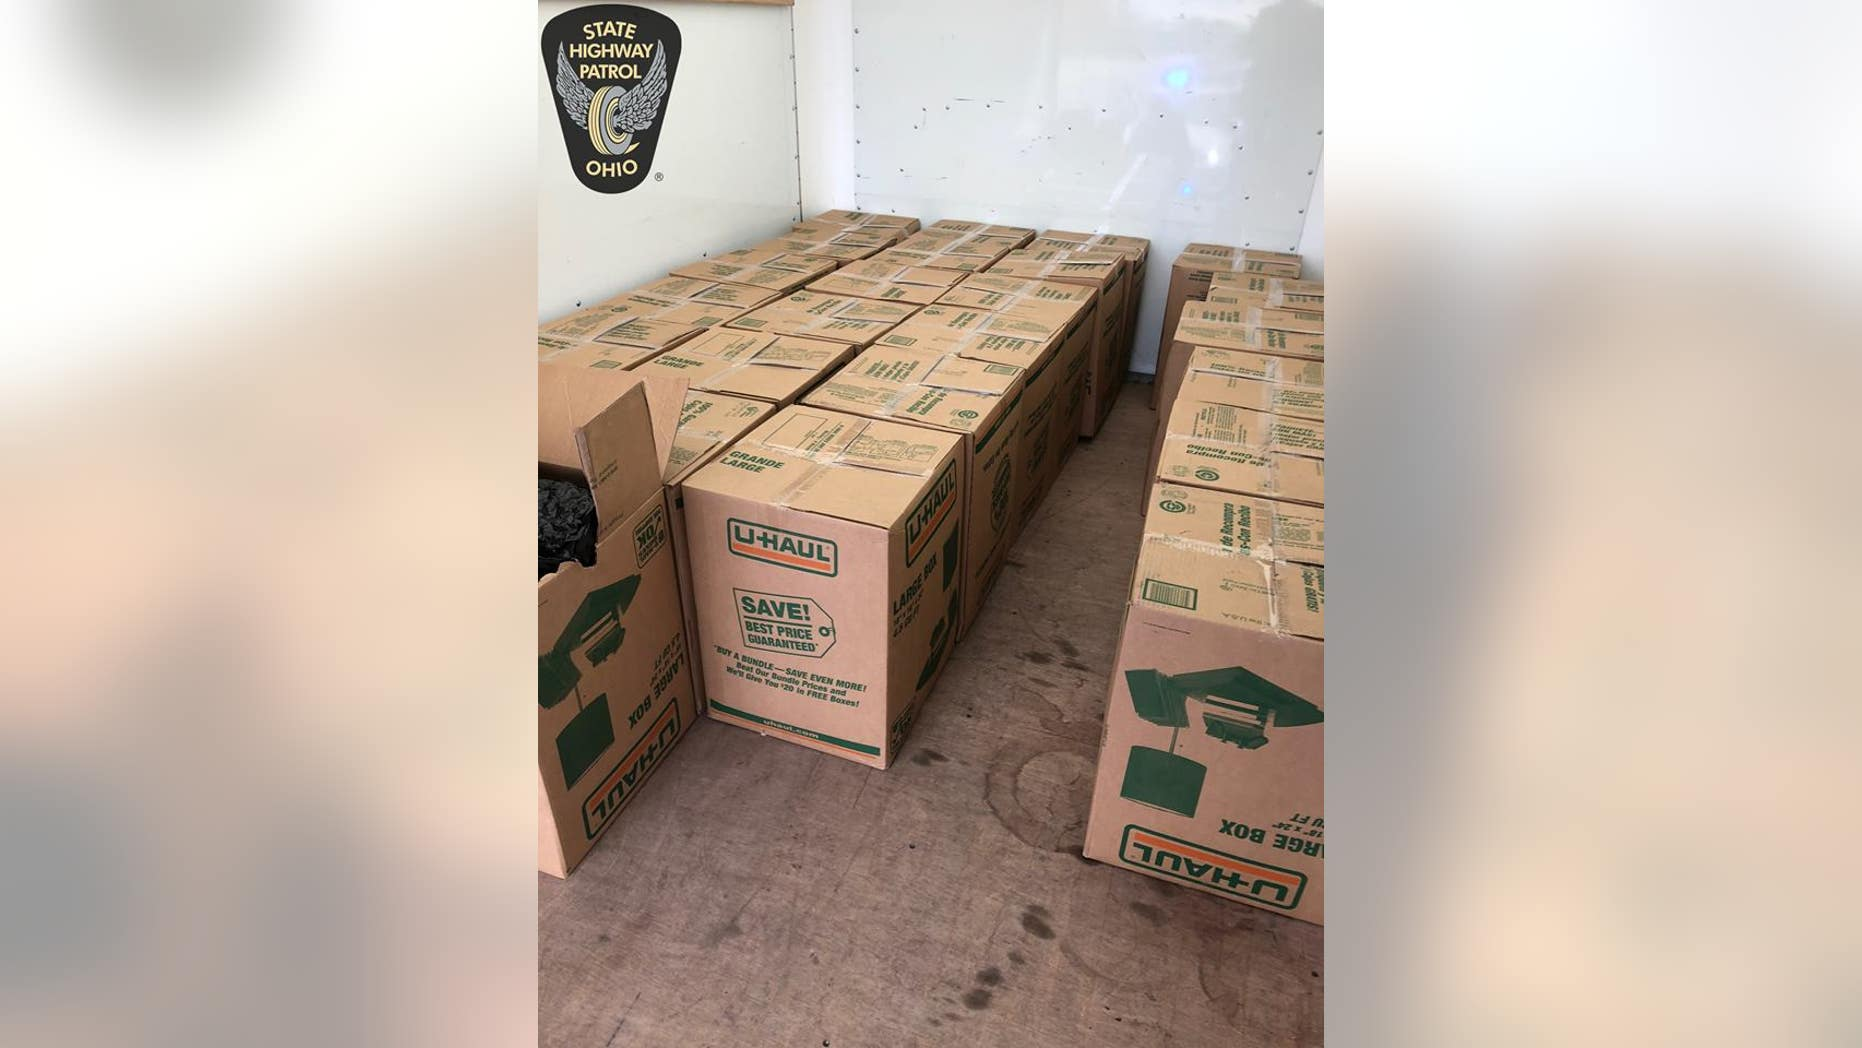 Officials said the marijuana was valued at $1.3 million.